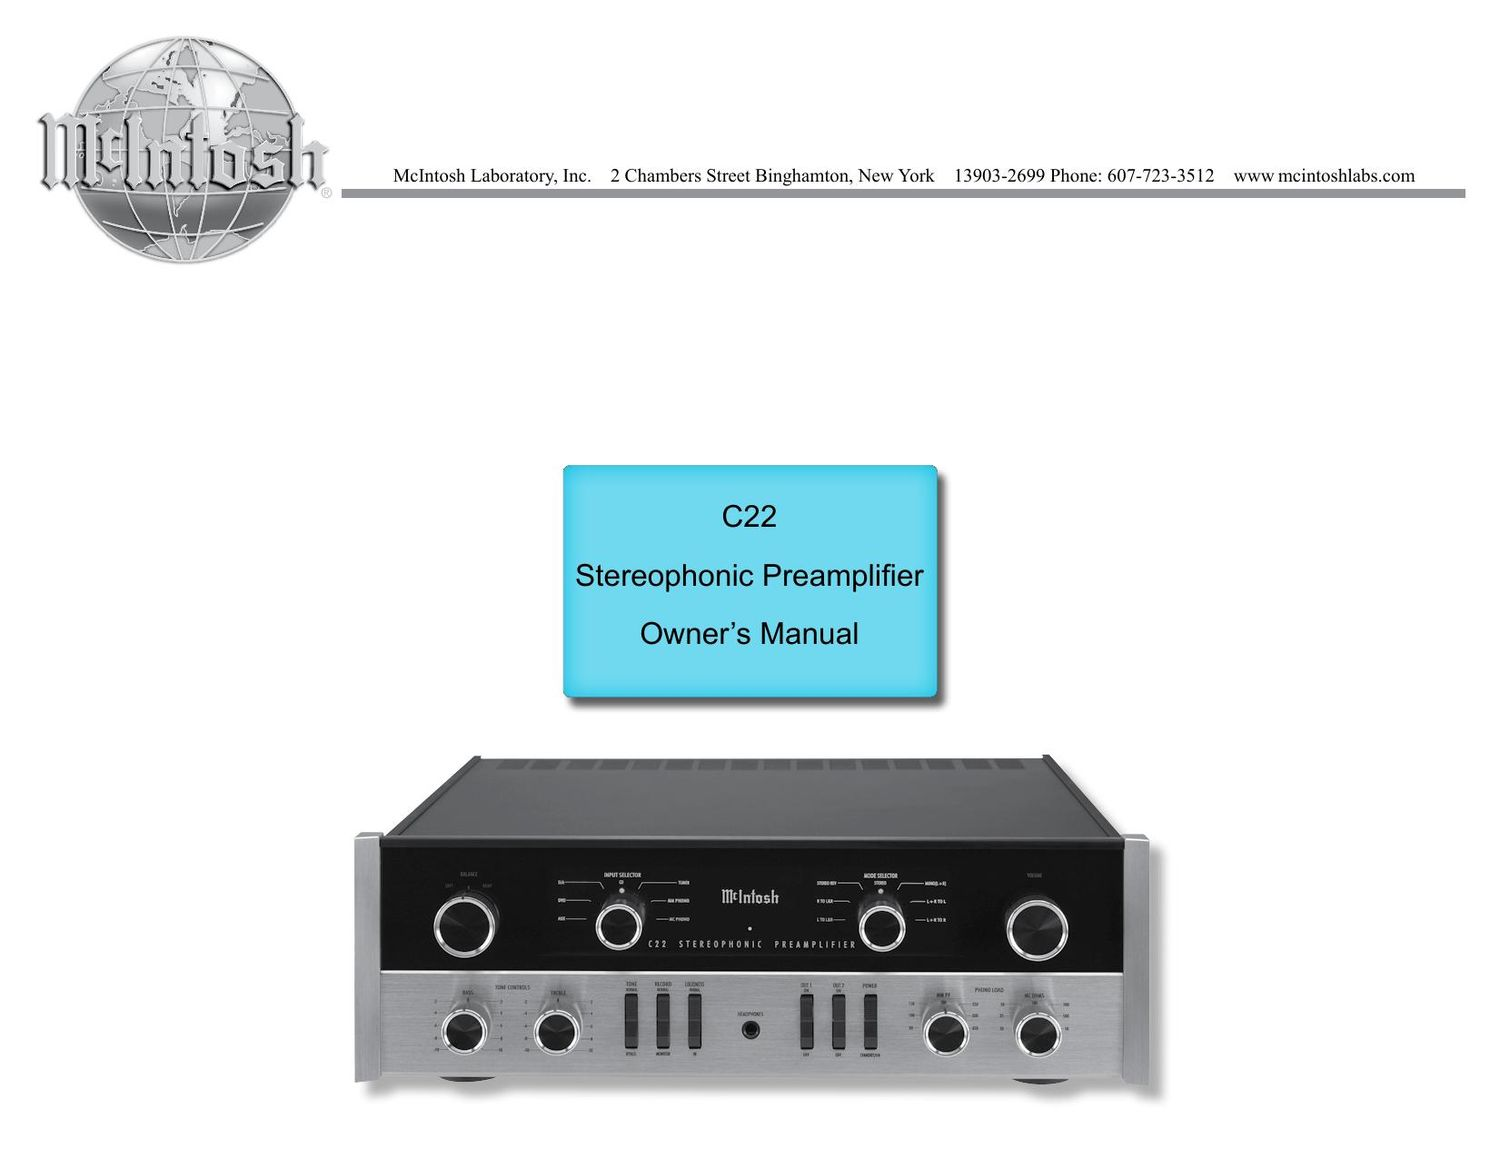 mcintosh c22 owners manual rh audioservicemanuals com mcintosh c22 preamp manual mcintosh c22 manual download